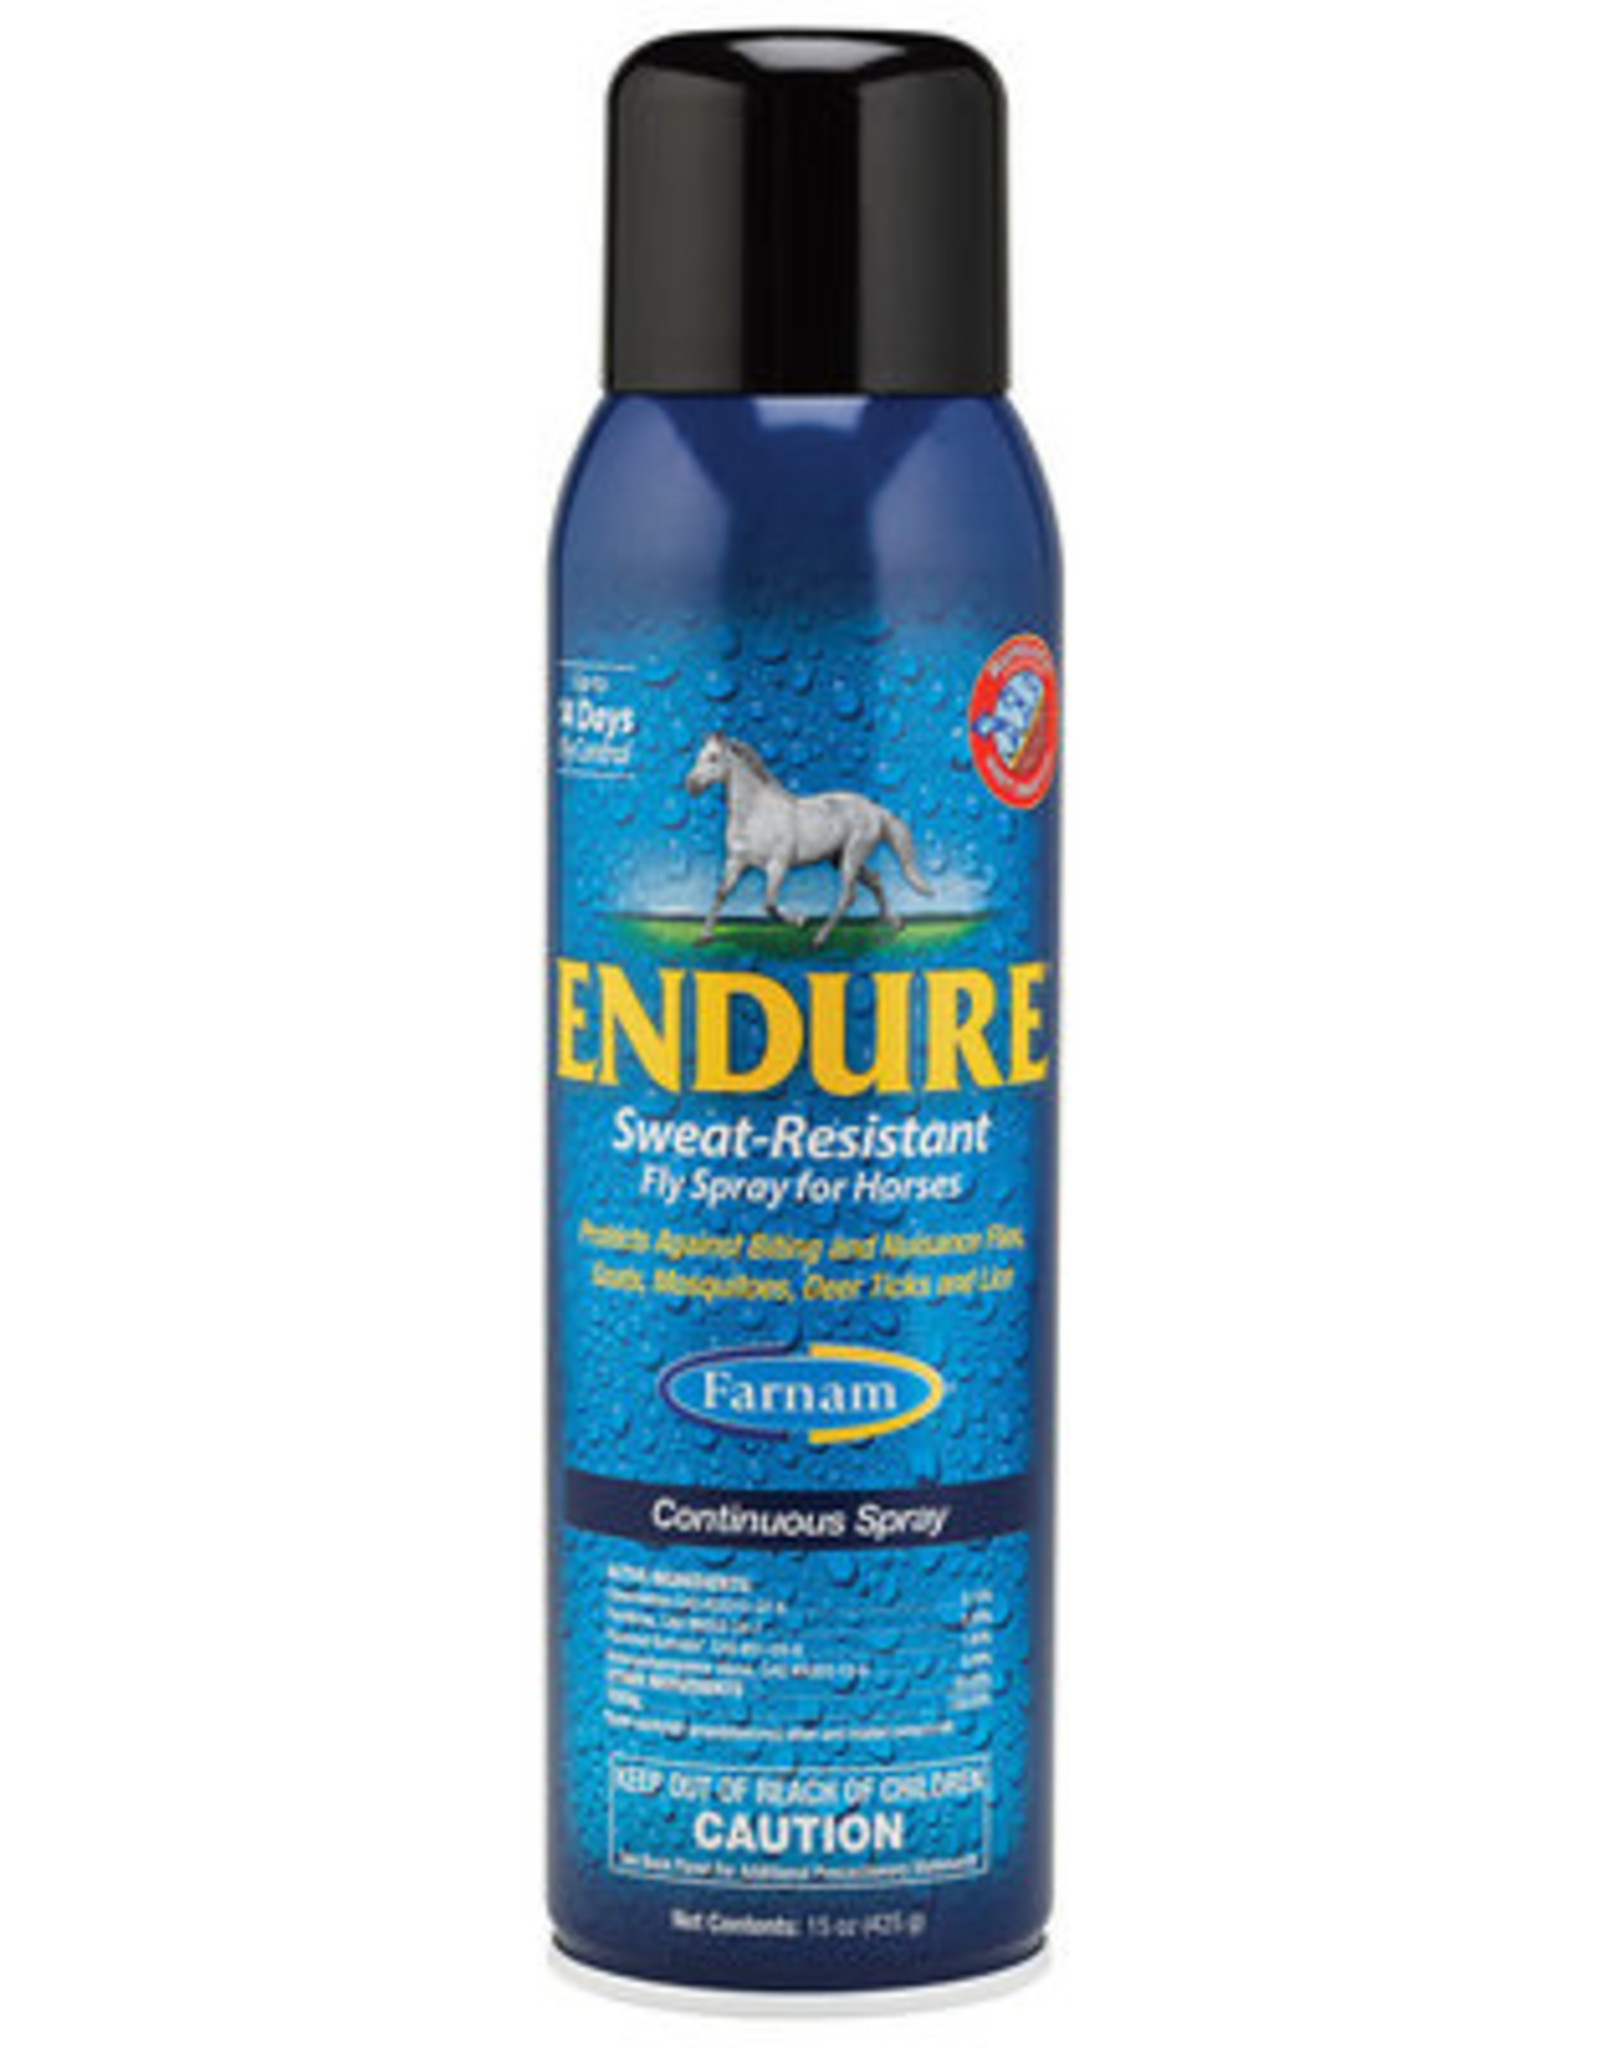 Farnam Endure Sweat-Resistant Fly Spray